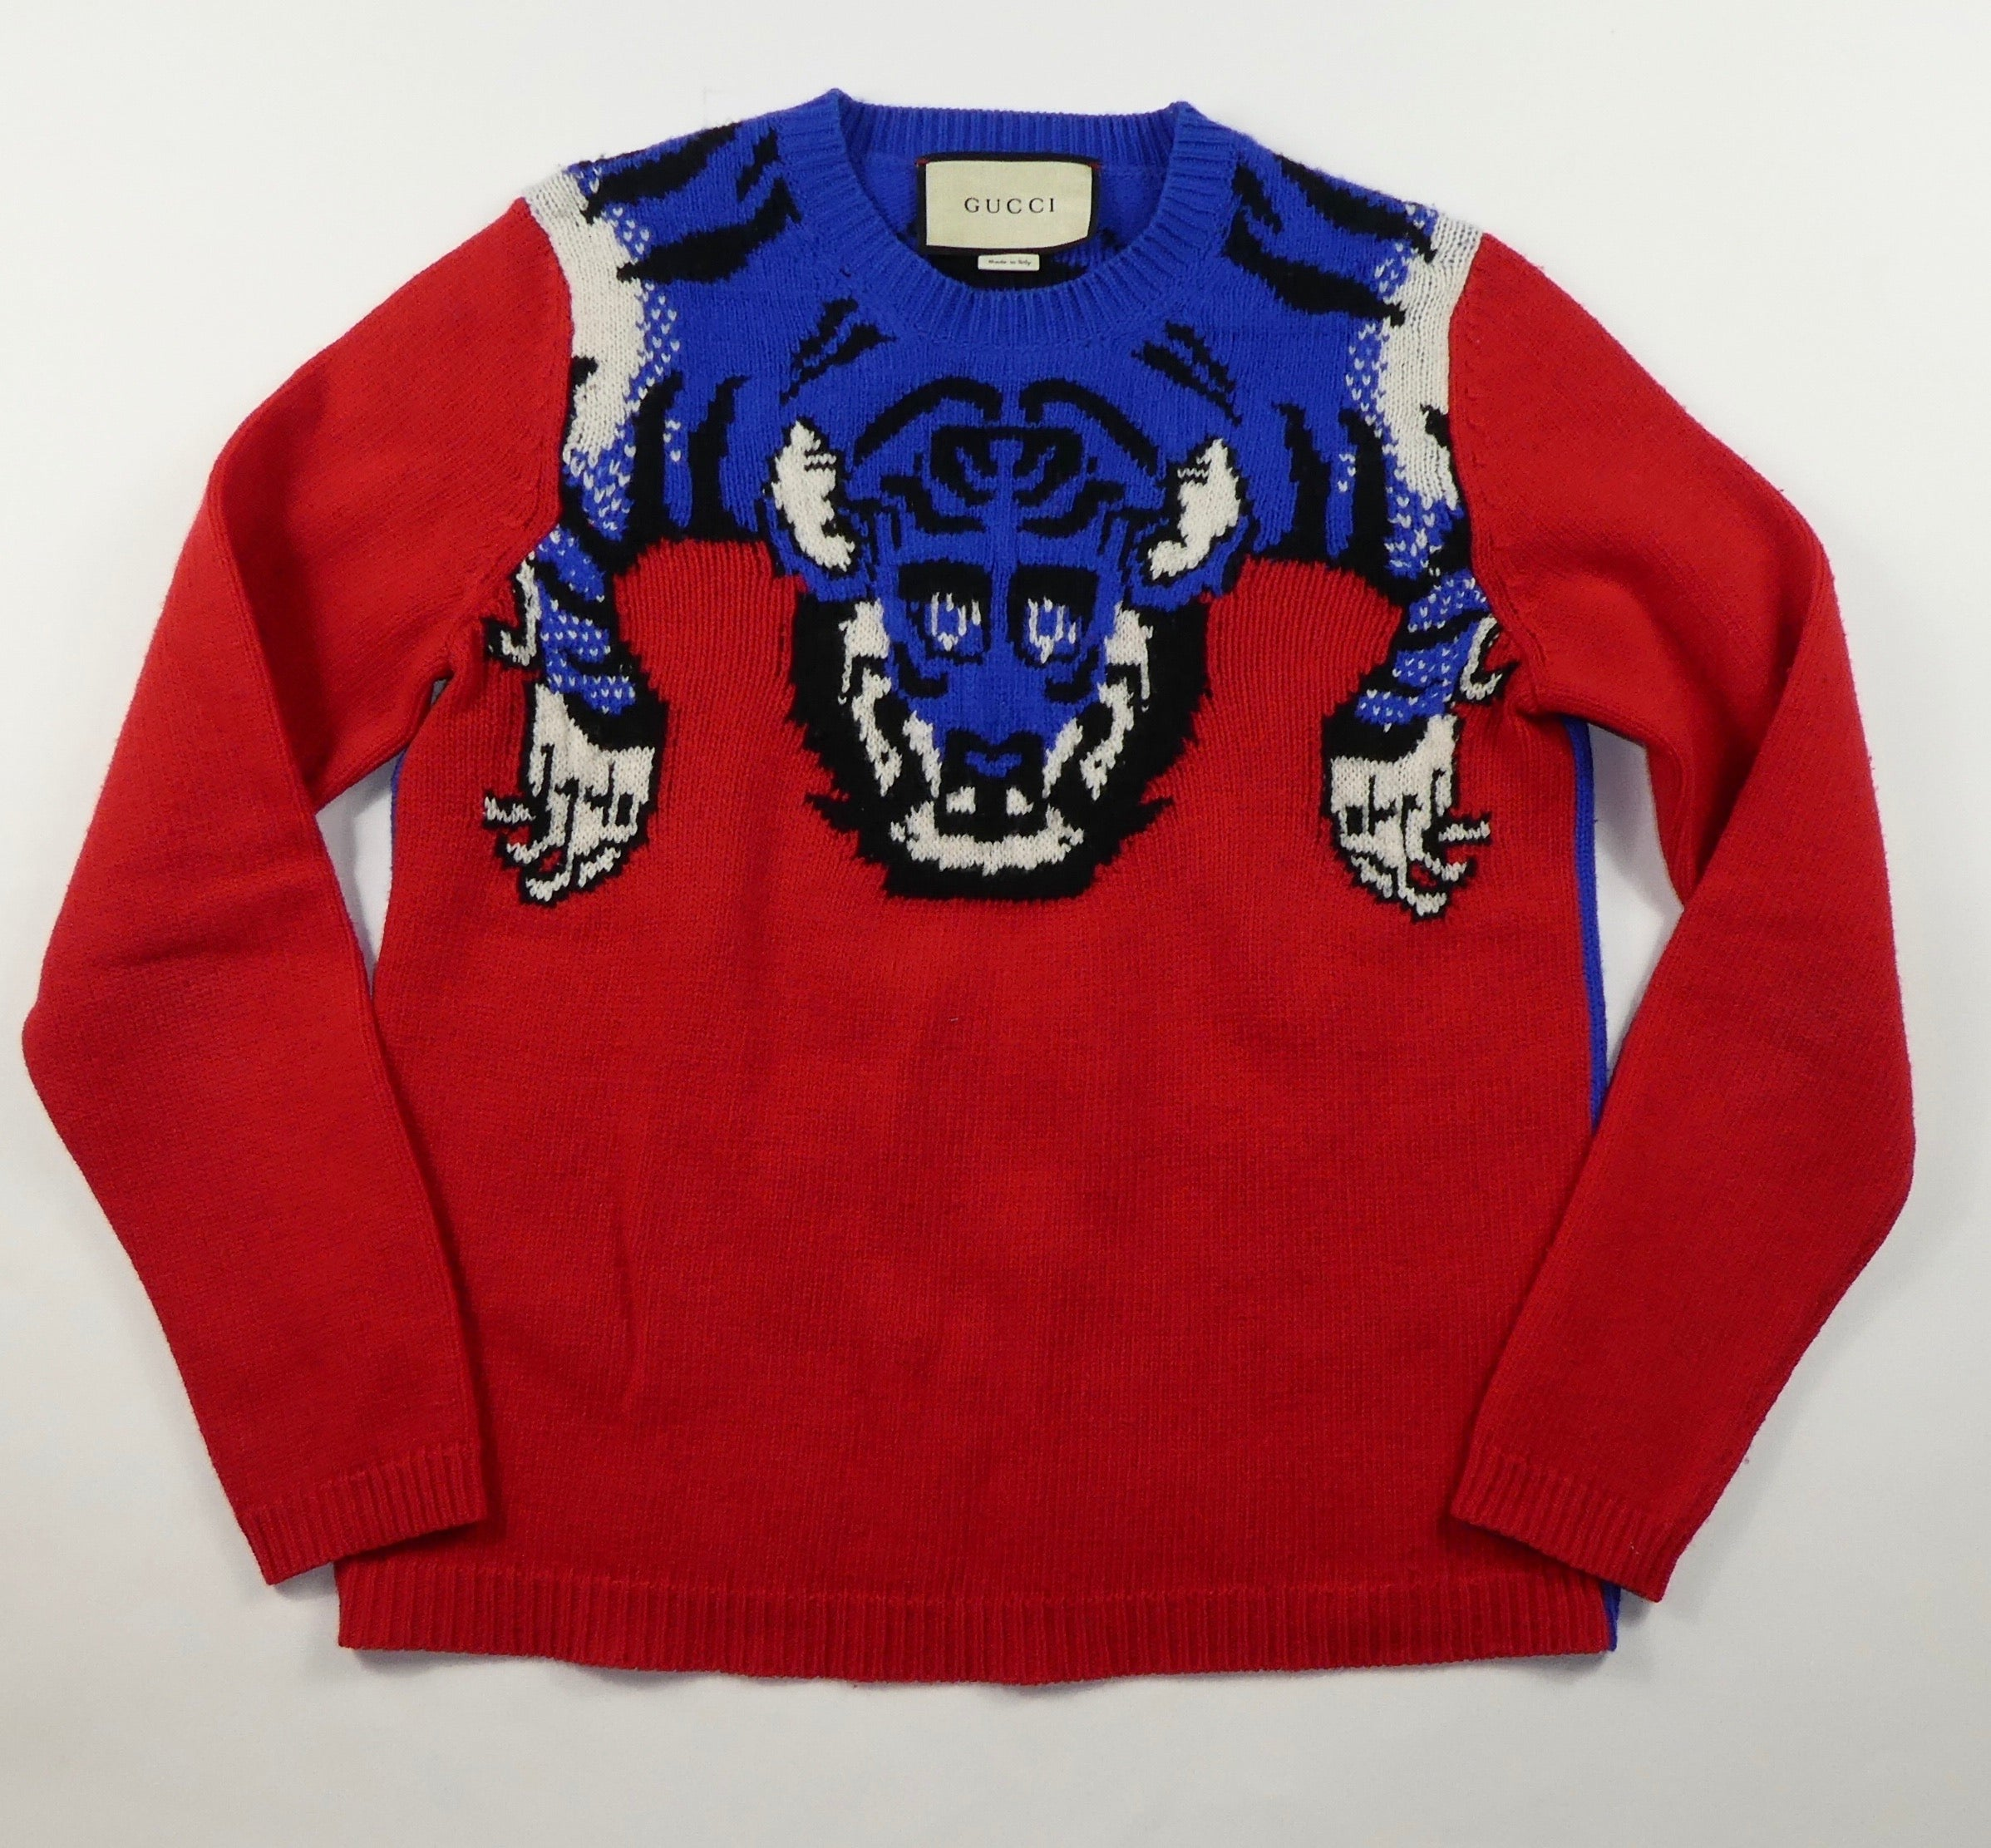 Gucci Crystal Tiger Knit Sweater - Small